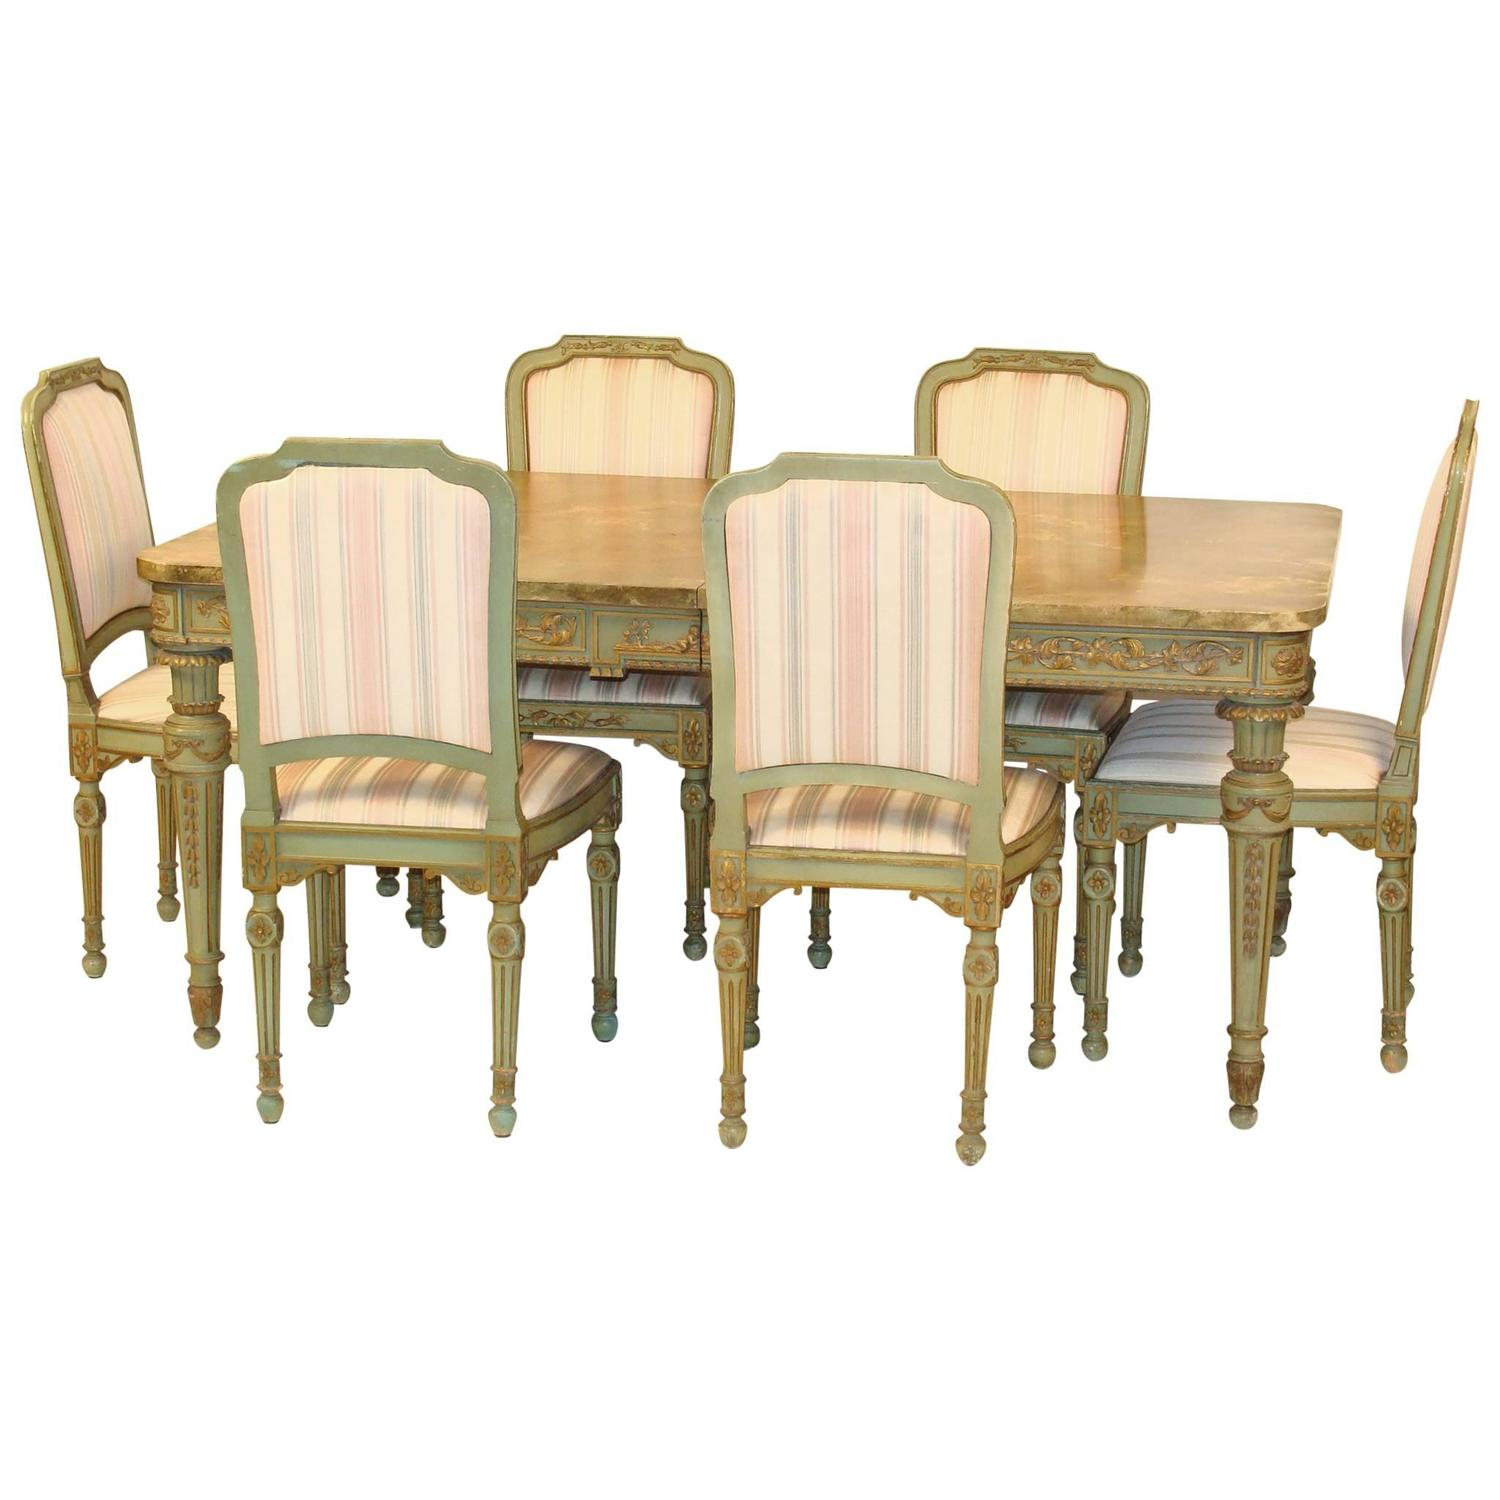 9 piece louis xvi style dining room set at 1stdibs for Dining room furniture 9 piece